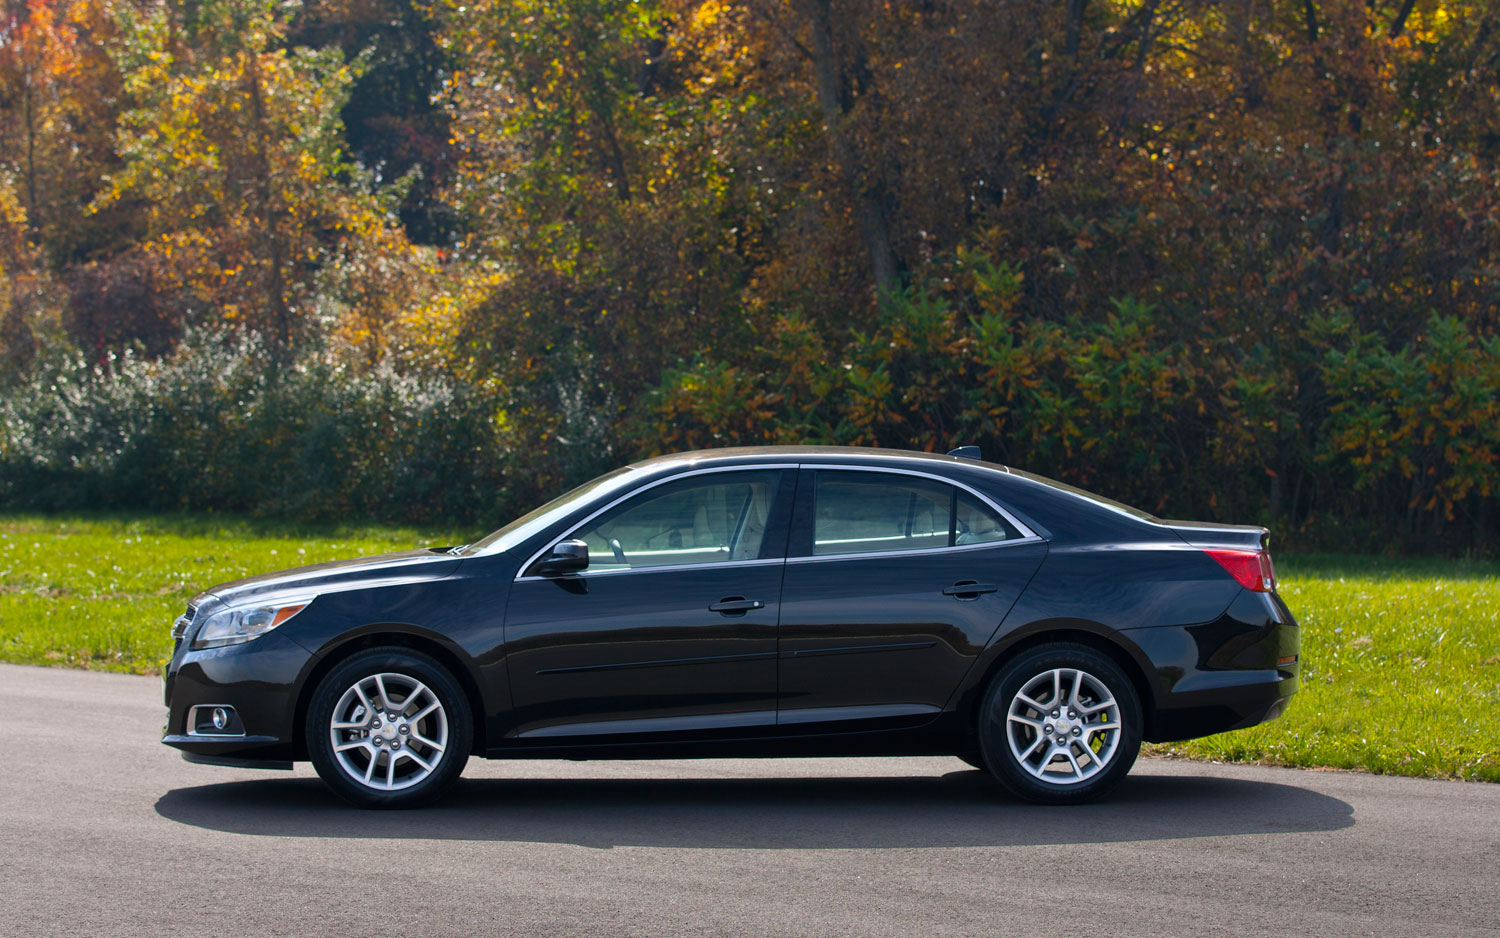 2013 Chevrolet Malibu ECO Left 111